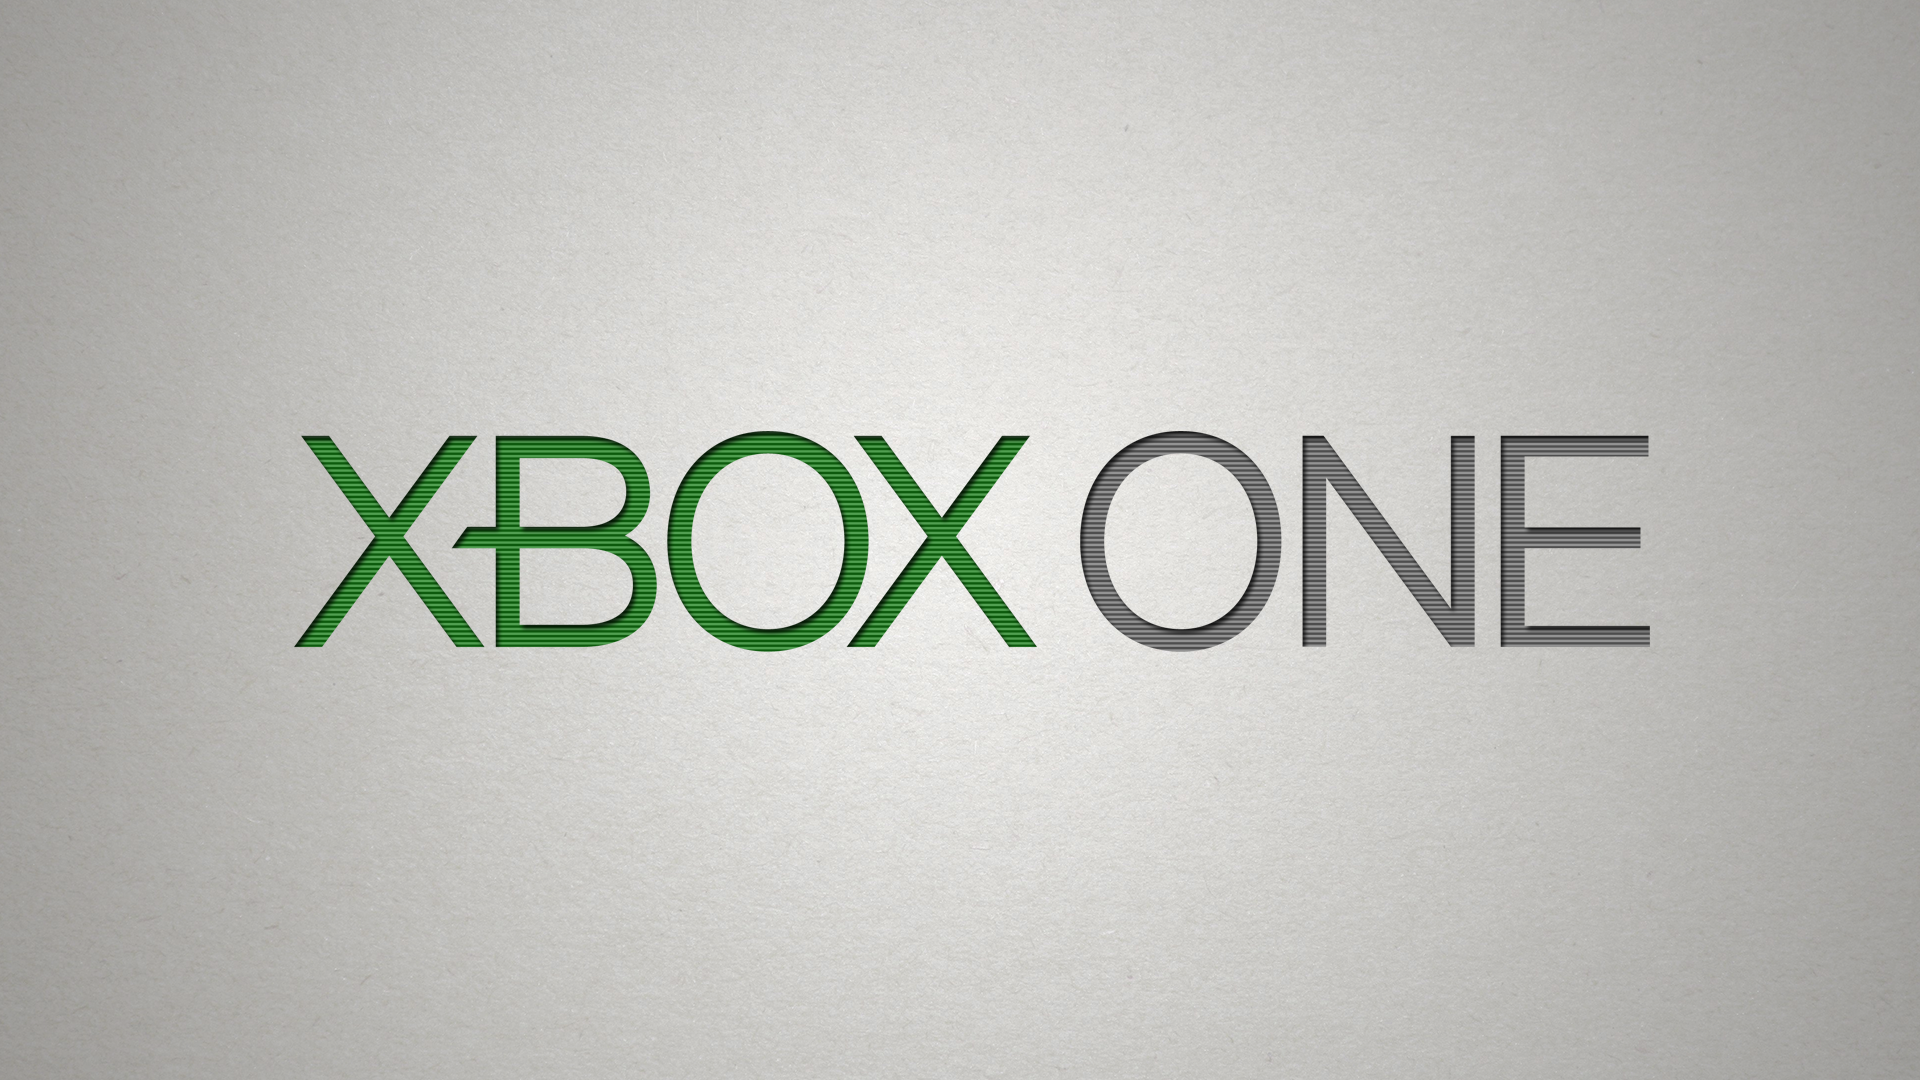 Download Wallpaper Logo Xbox One - thumb-1920-456337  Trends_789146.png